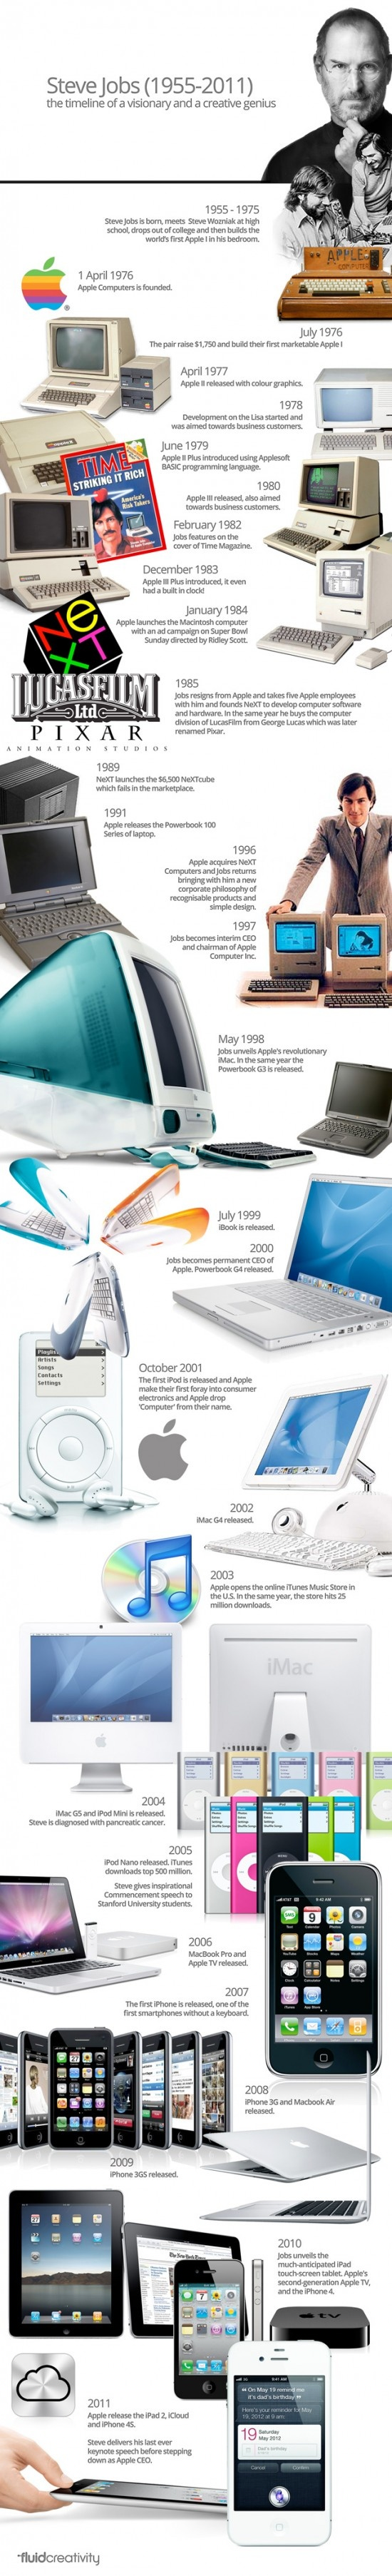 The Timeline of a Visionary and a Creative Genius, Steve Jobs.